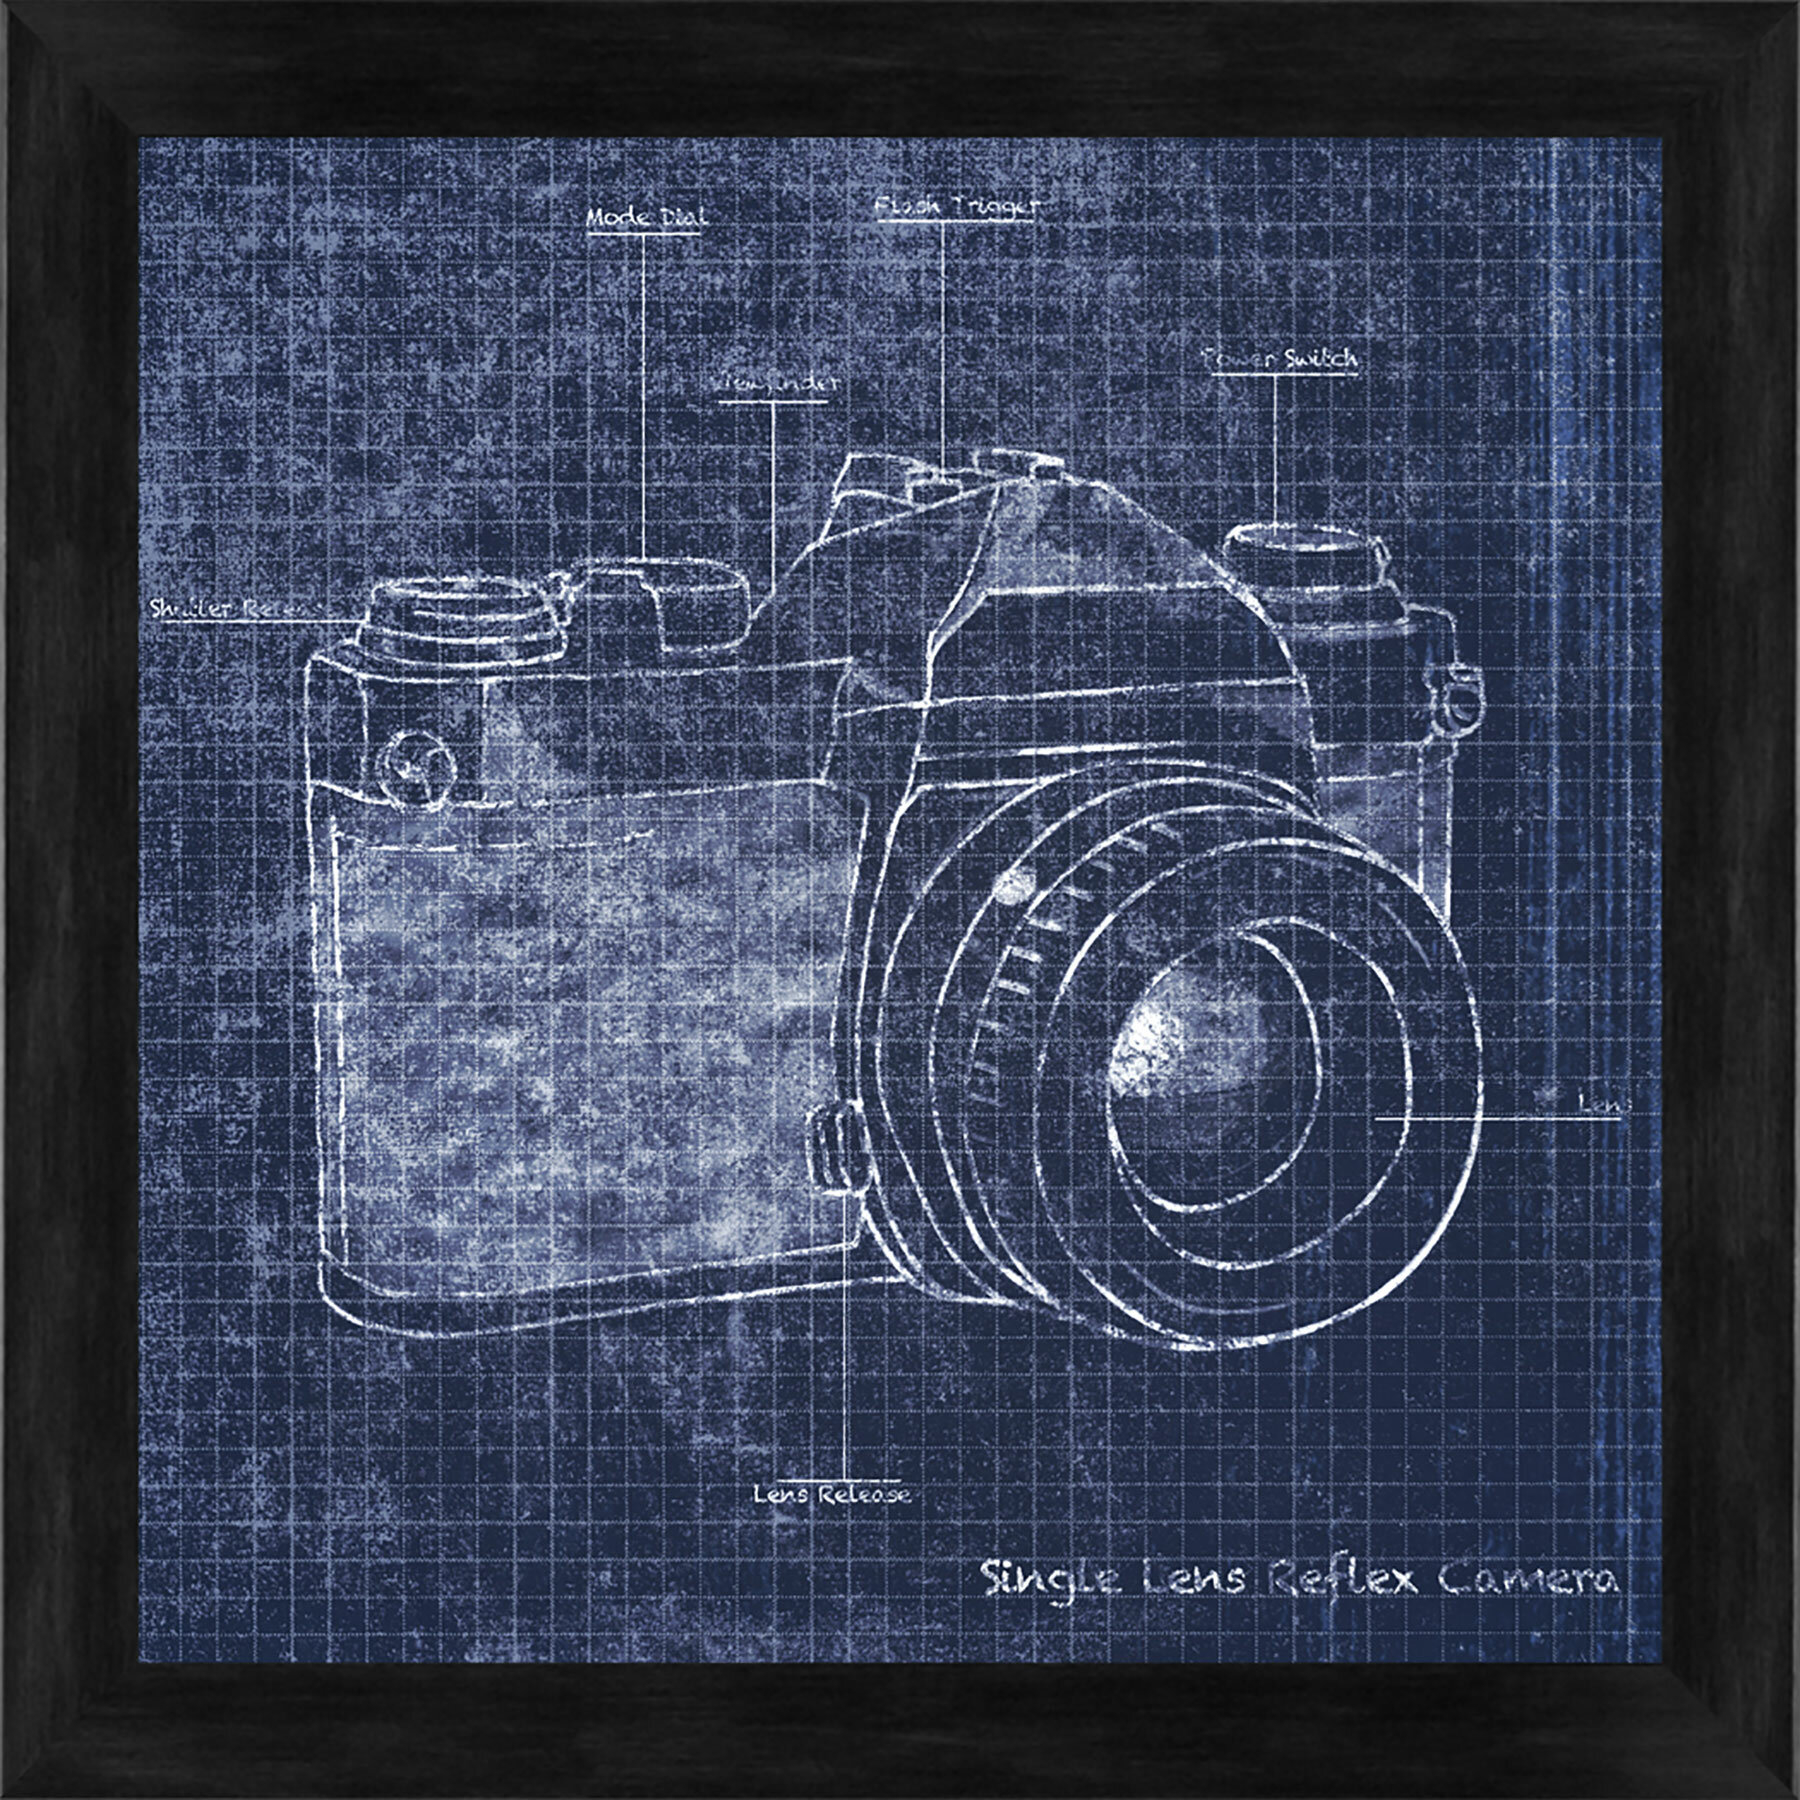 Ptm images camera blueprint i gicle framed graphic art reviews ptm images camera blueprint i gicle framed graphic art reviews wayfair malvernweather Gallery